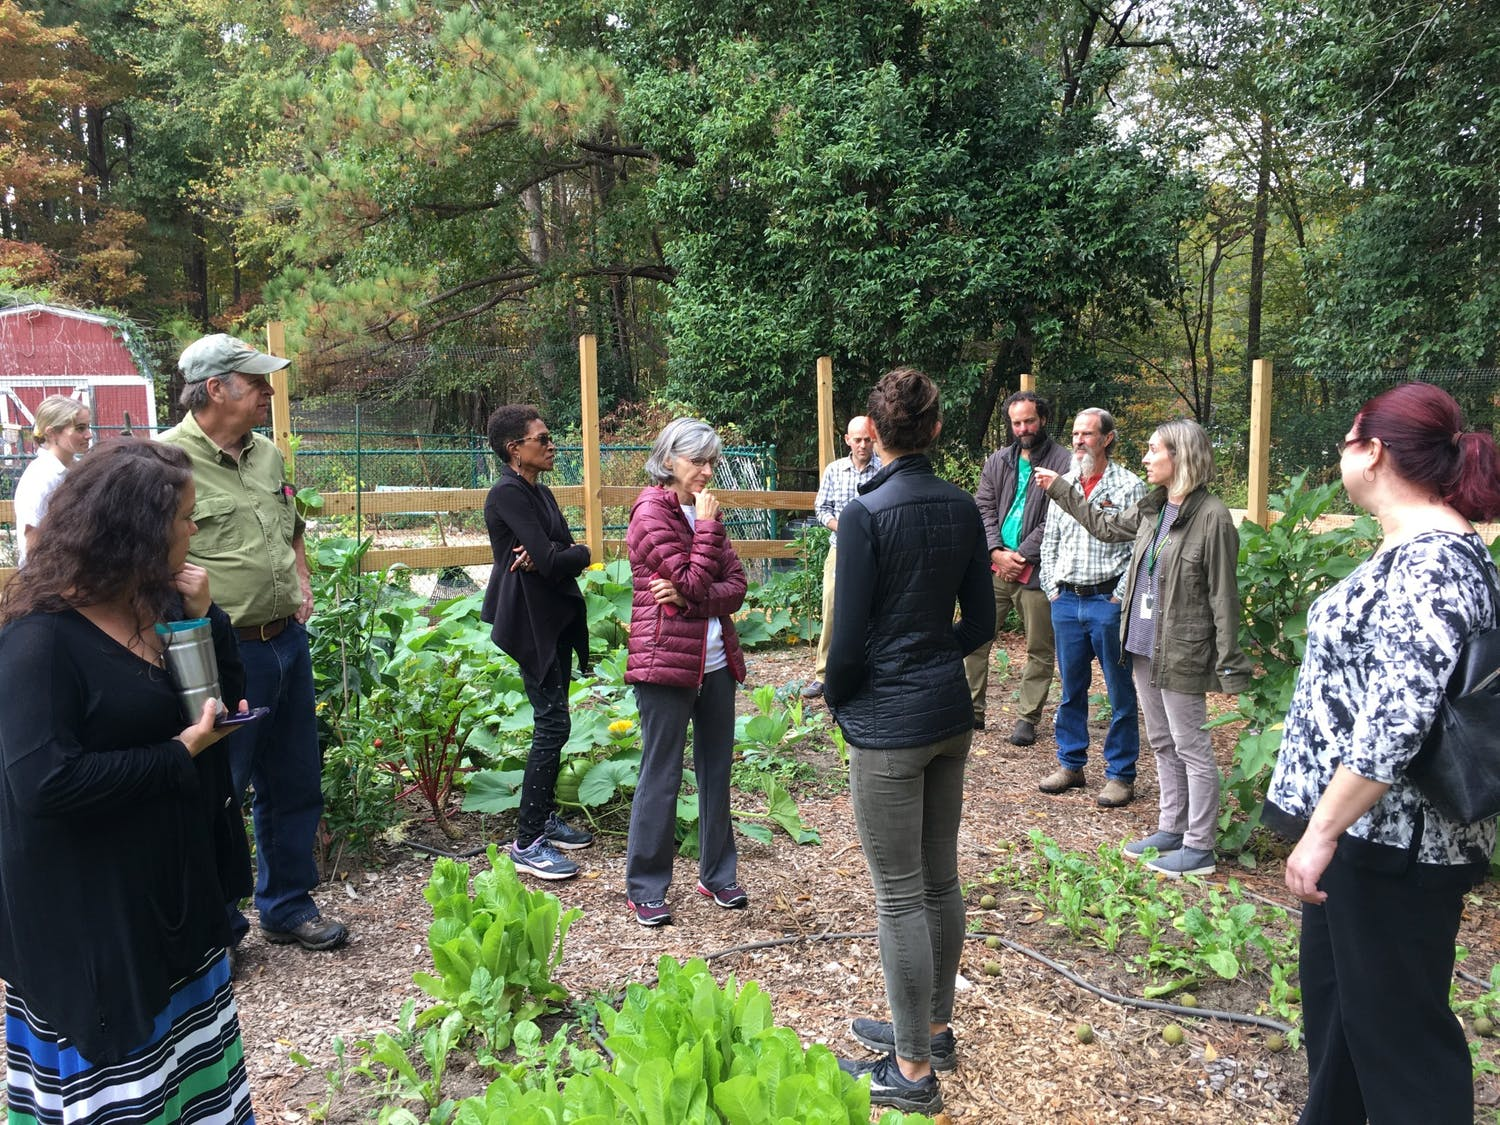 Food Council members and elected officials learn about the importance of school gardens at a school garden tour at Estes Hill Elementary led by the CHCCS Sustainability Director Dan Schnitzer. Photo courtesy of Ashley Heger.